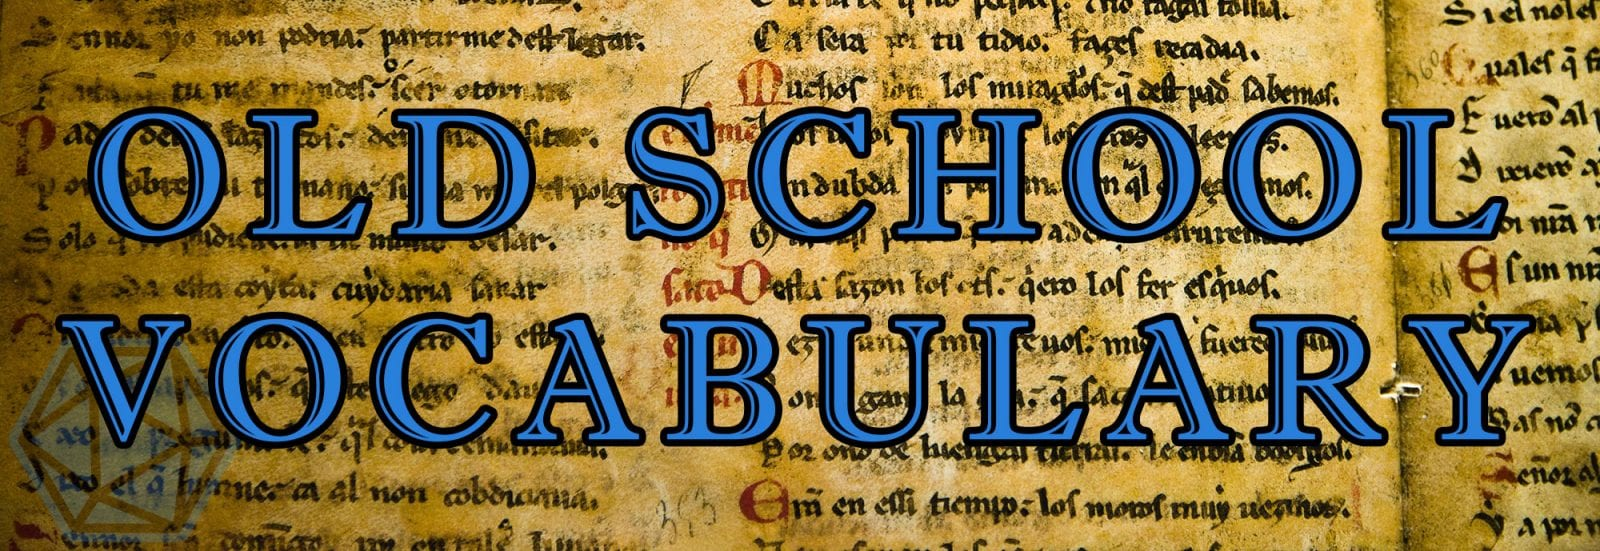 104 Great Old School Words (and Insults!) for Fantasy Games & RPGs